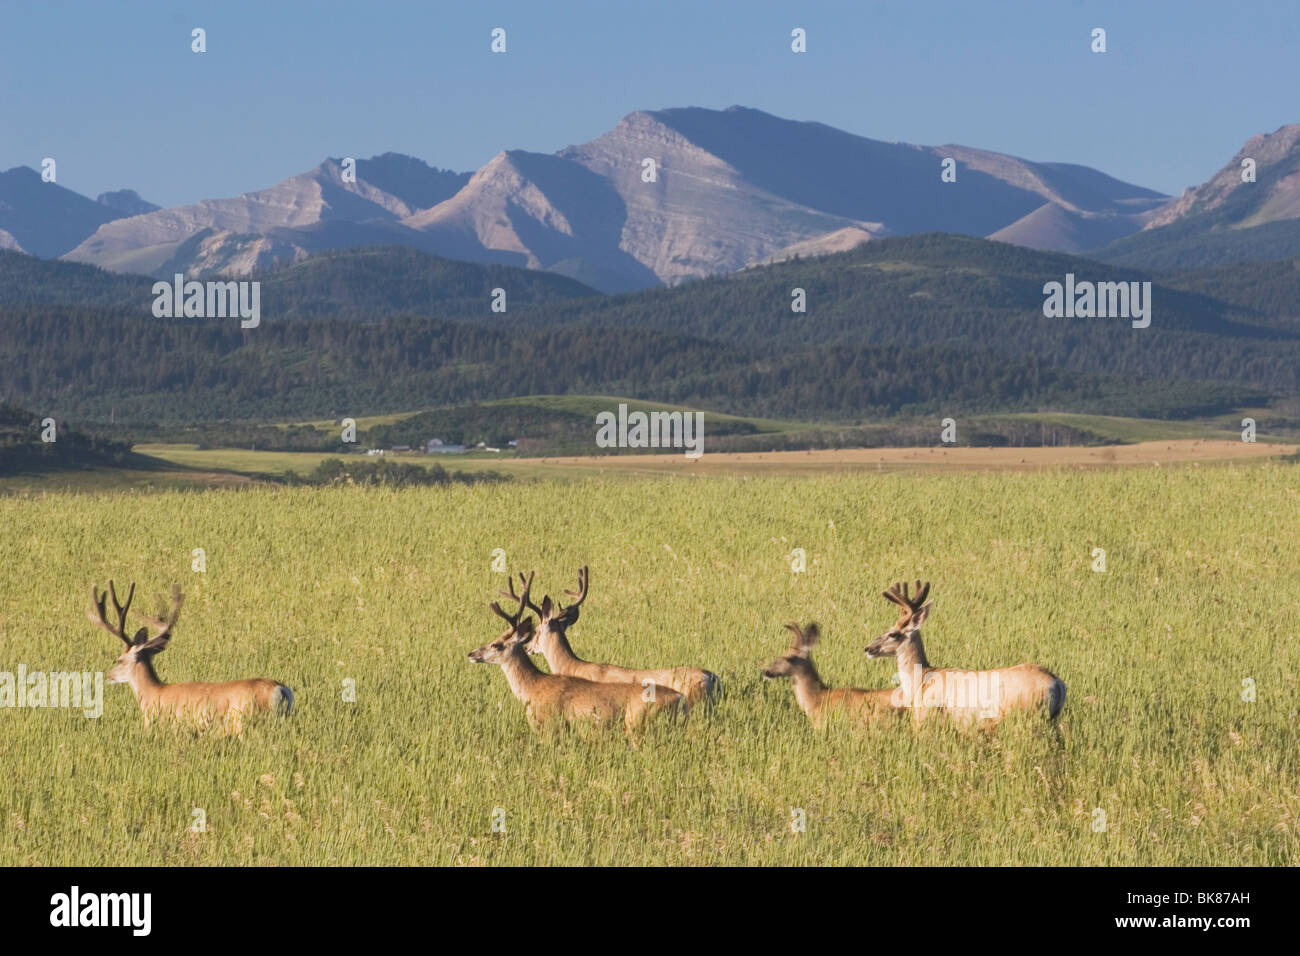 Pincher Creek, Alberta, Canada; Deer Walking Through A Field With Mountains In The Background - Stock Image